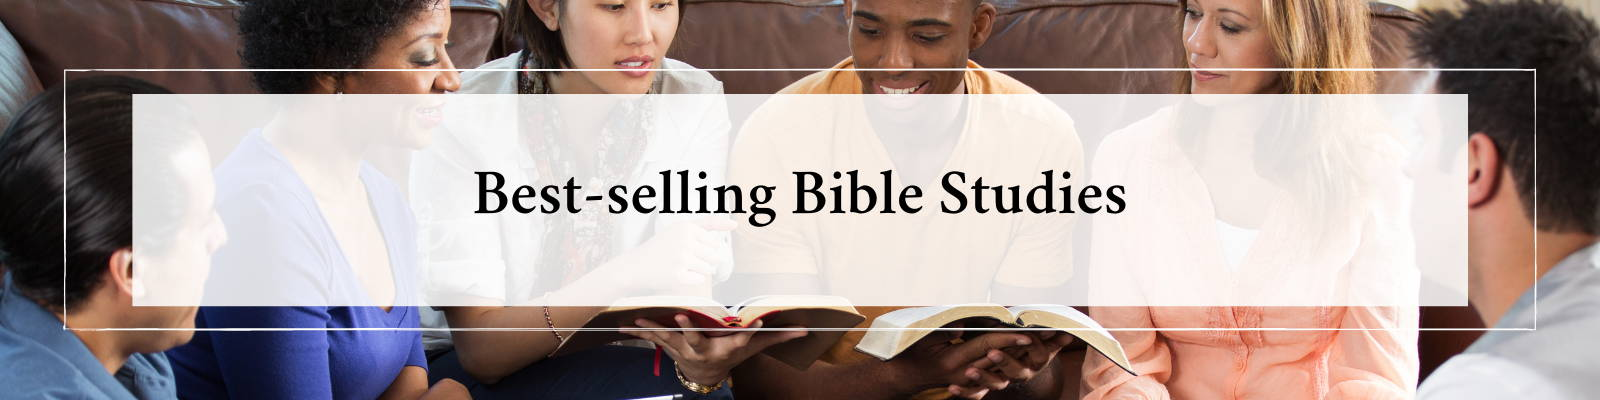 Best-selling Bible Studies